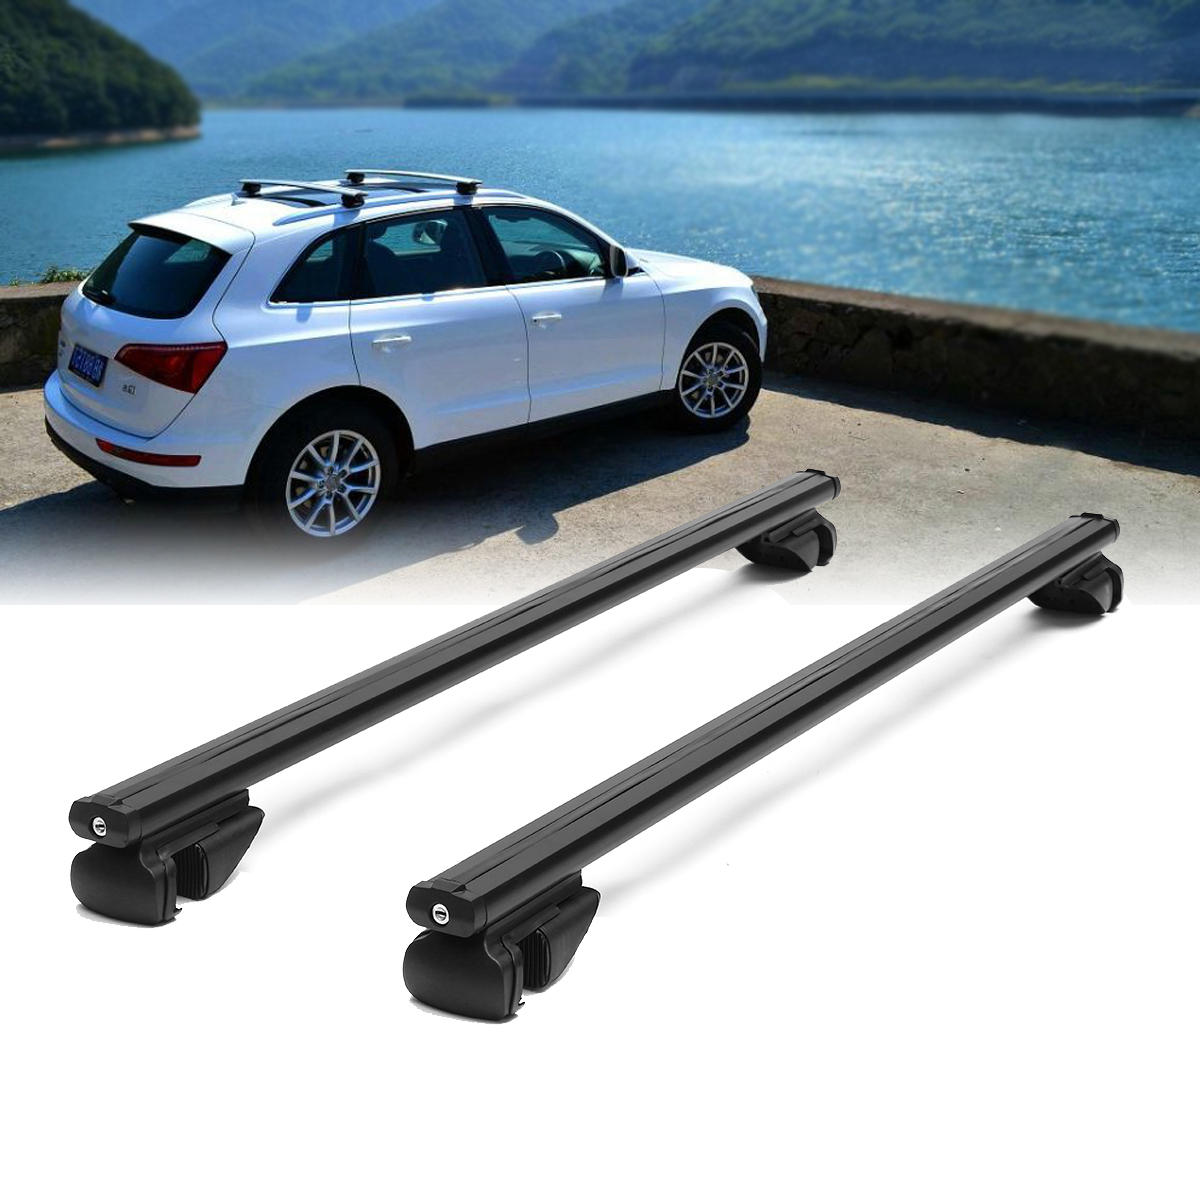 BMW 3 Series Universal Aluminium Anti-Theft Roof Bars 120cm